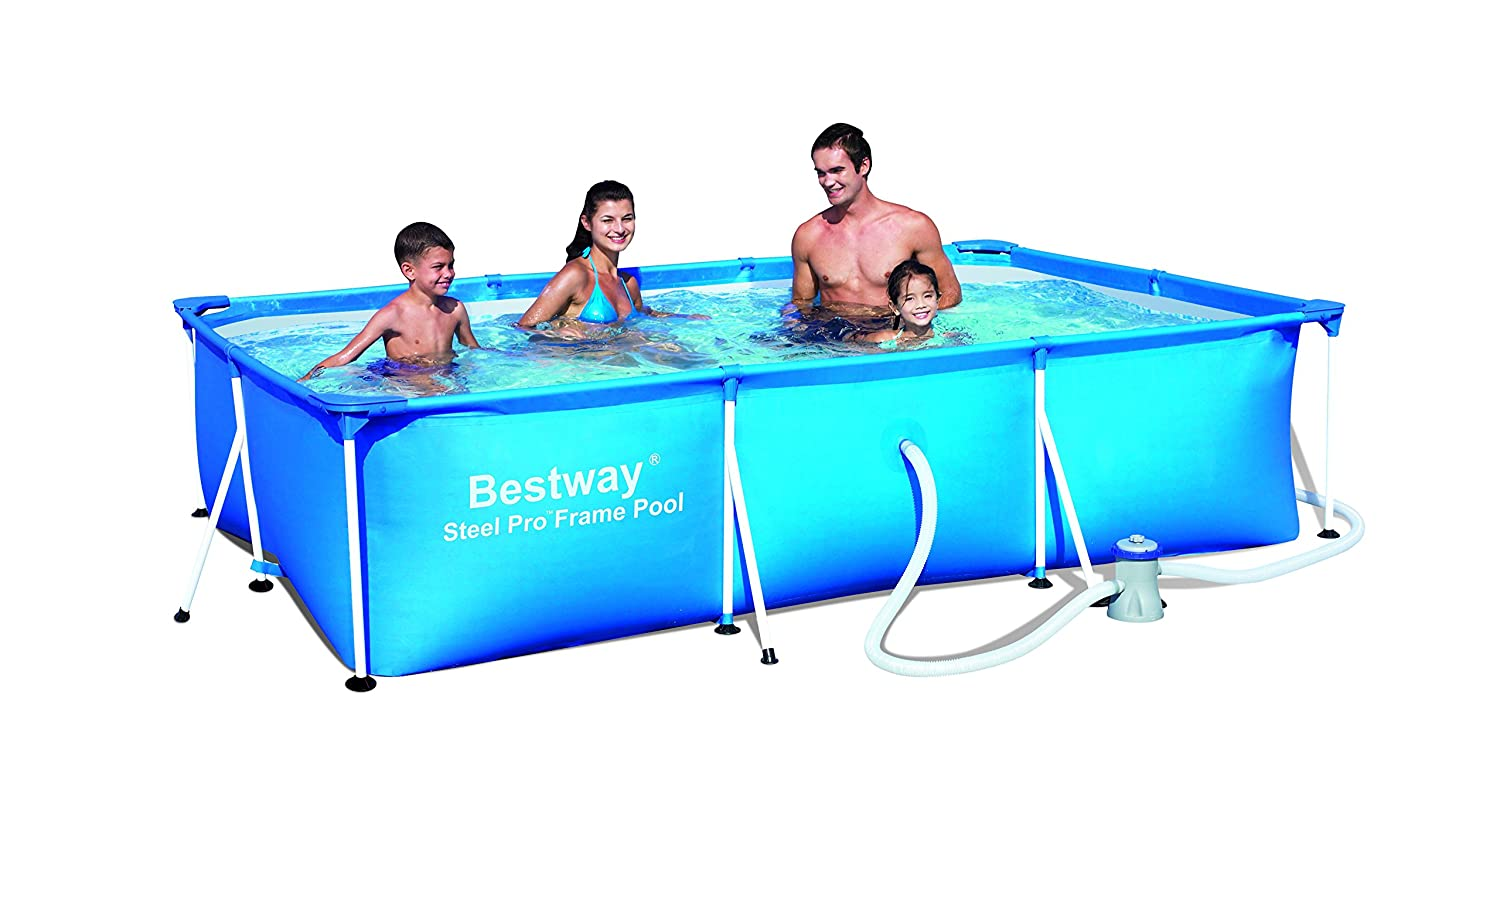 Bestway 118 x 79 x 26-inch Deluxe Splash Frame Pool Set 56078